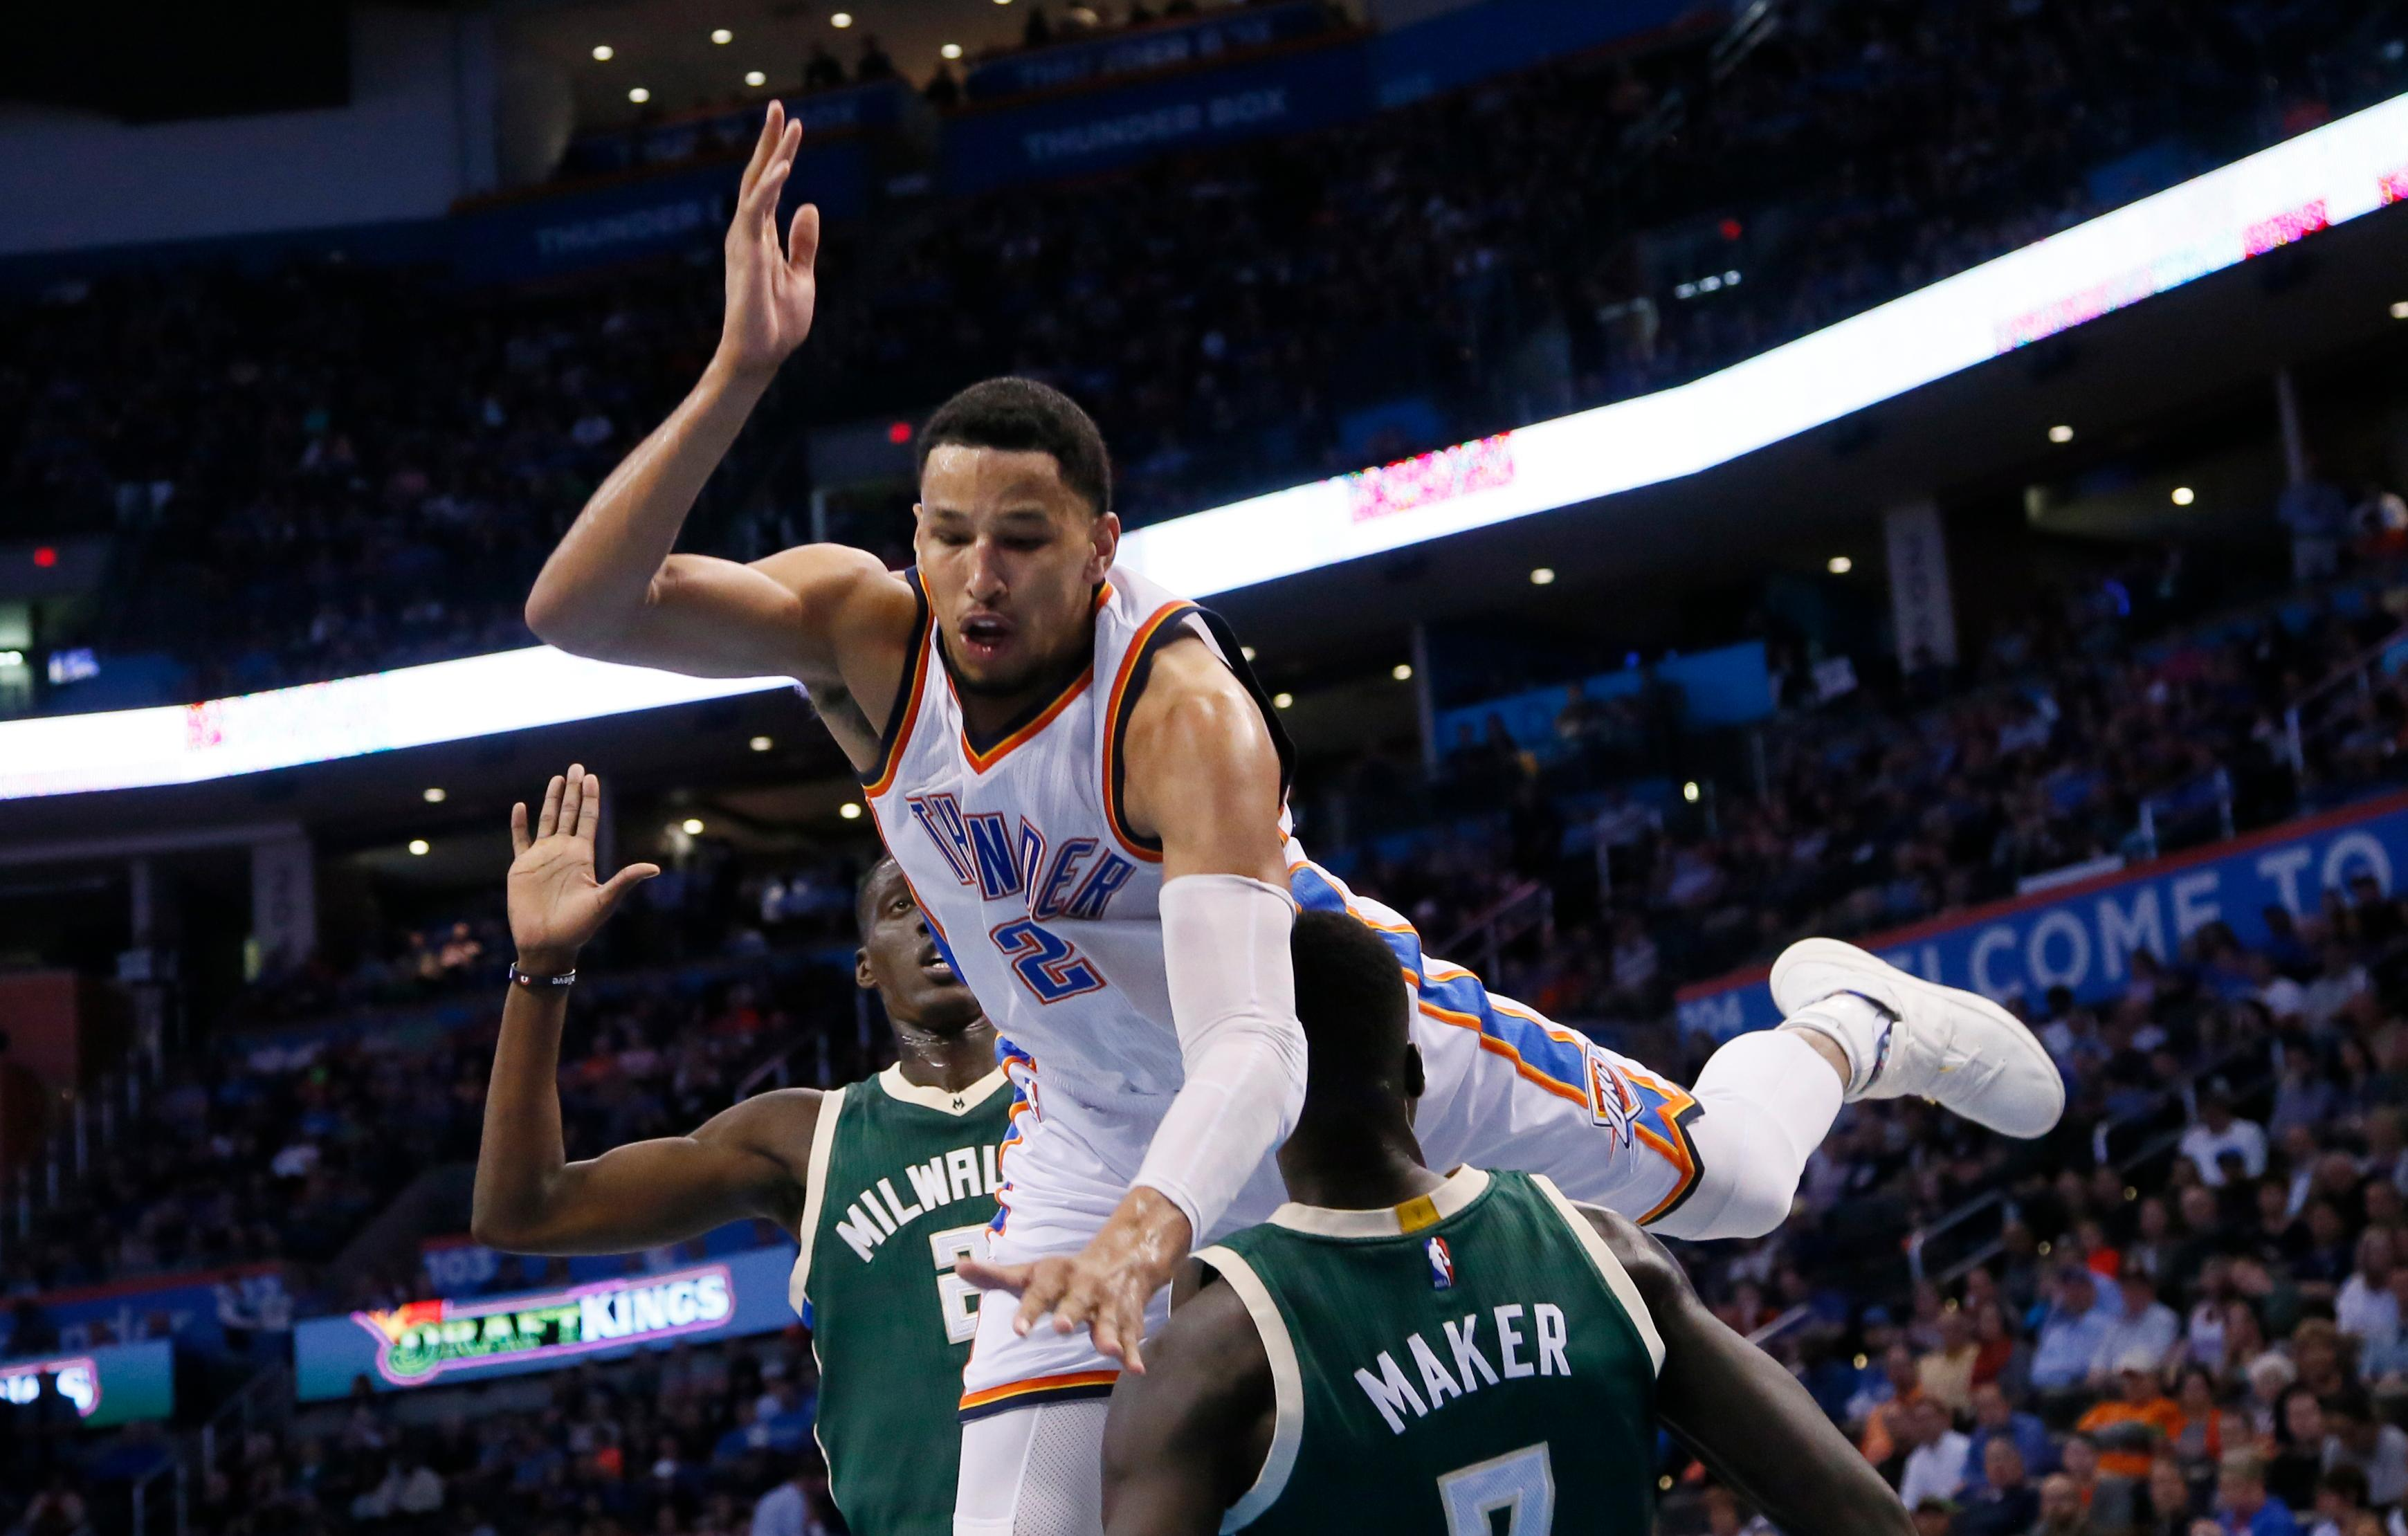 Oklahoma City Thunder forward Andre Roberson, center, falls over Milwaukee Bucks forward Thon Maker, right, and is called for an offensive foul in the third quarter of an NBA basketball game in Oklahoma City, Tuesday, April 4, 2017. Oklahoma City won 110-79. Bucks Tony Snell is at left. (AP Photo/Sue Ogrocki)